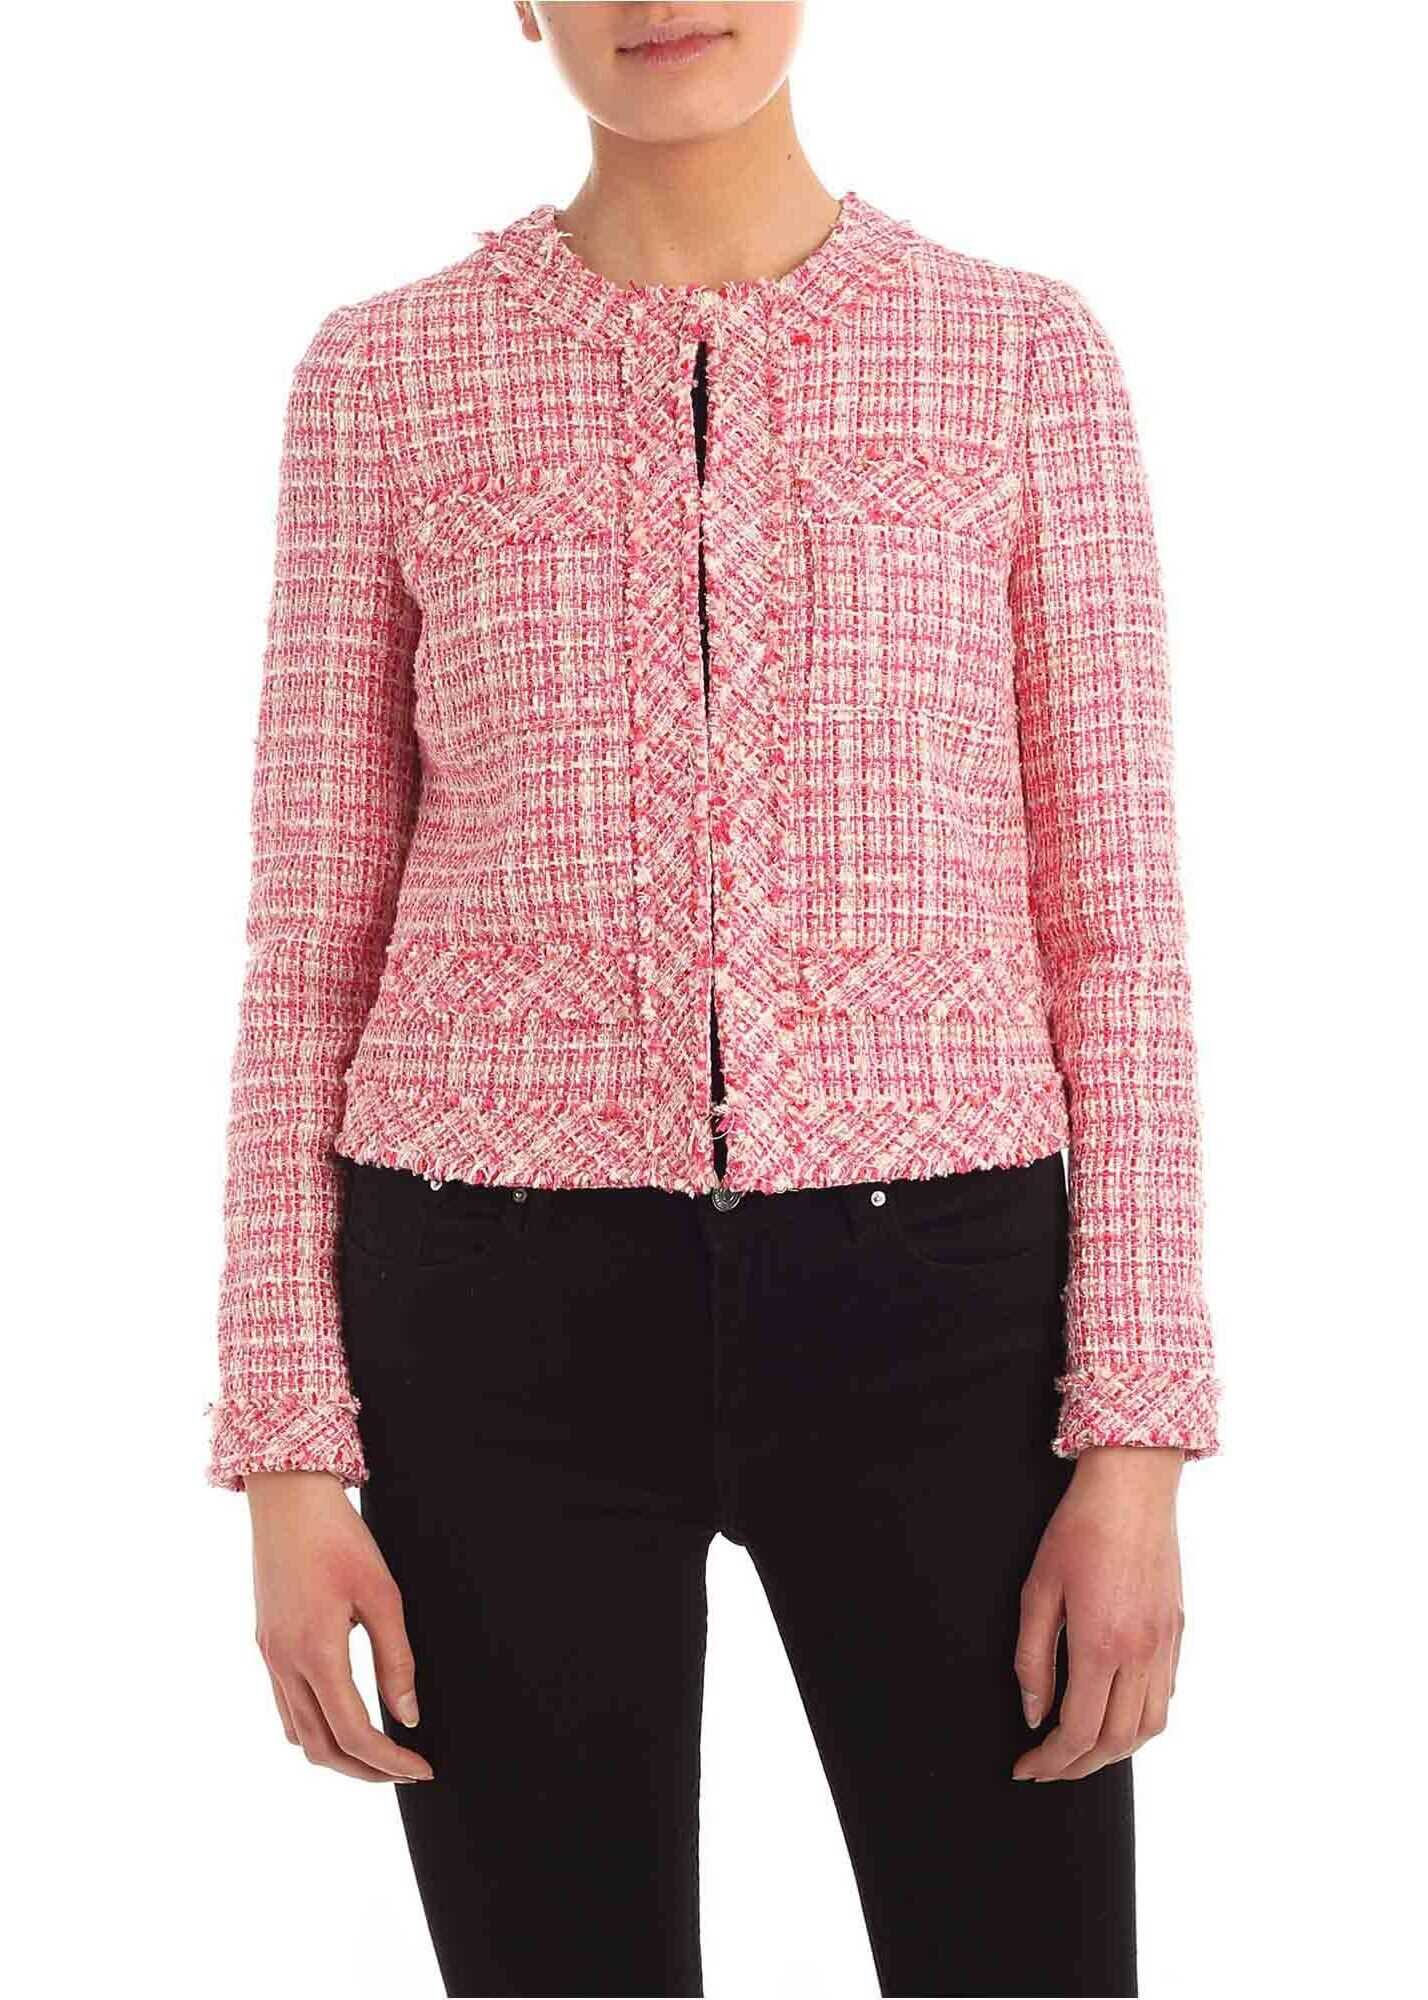 Be Blumarine Bouclè Jacket In Pink And White Pink